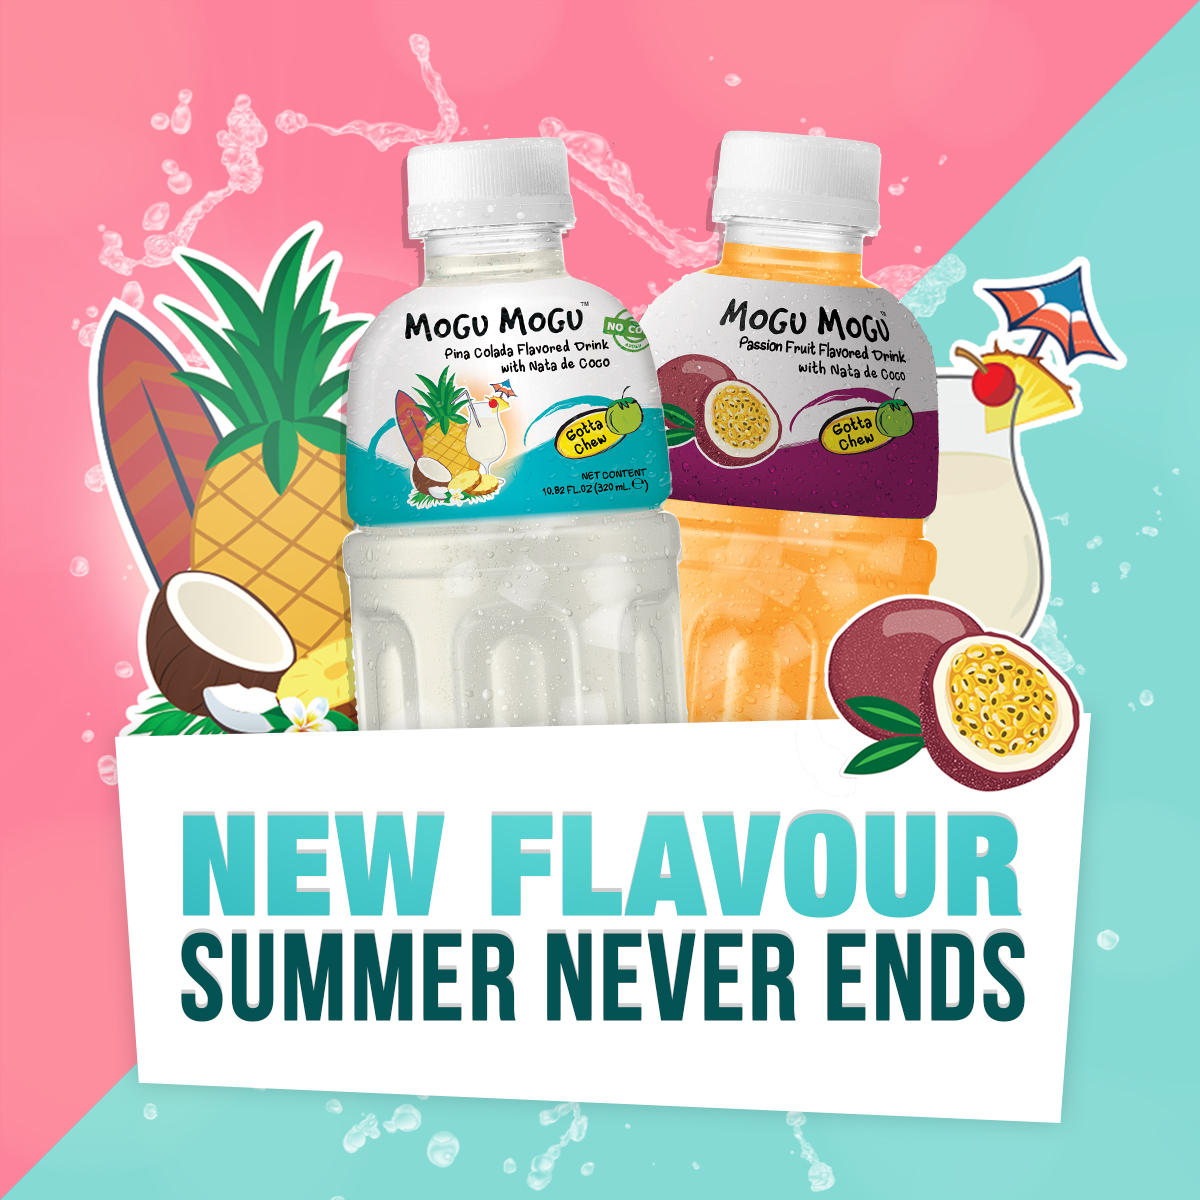 [New Product] Mogu Mogu Pina Colada & Passion Flavour Drink